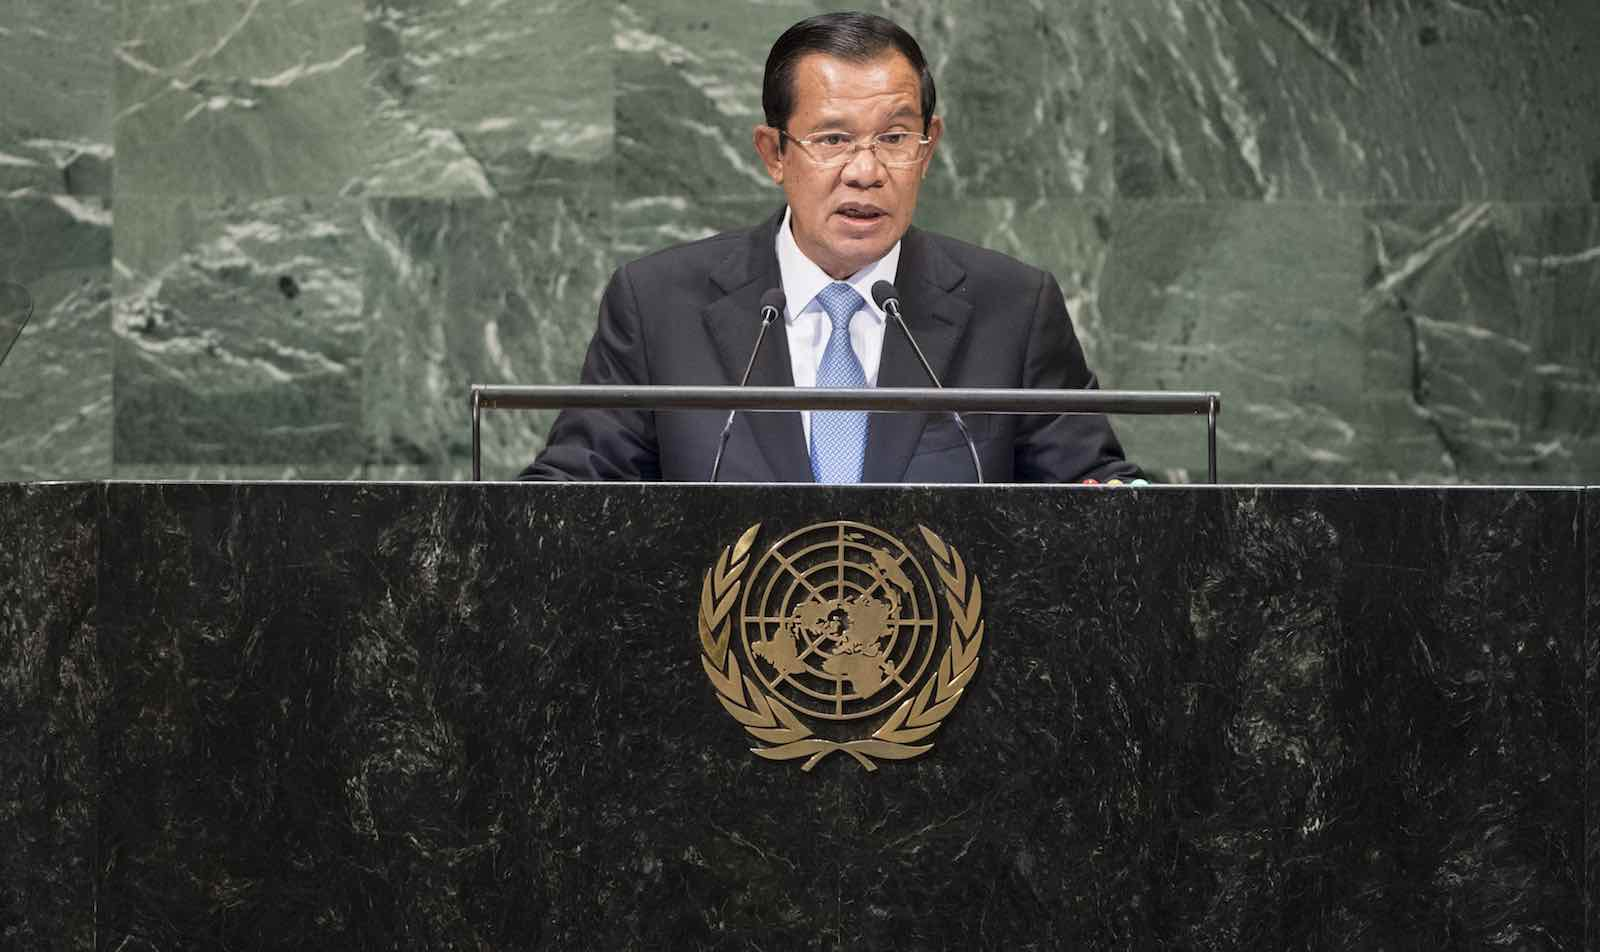 Cambodian Prime Minister Hun Sen at the UN General Assembly on 28 September, 2018 (Photo: Kim Haughton/UN Photo)